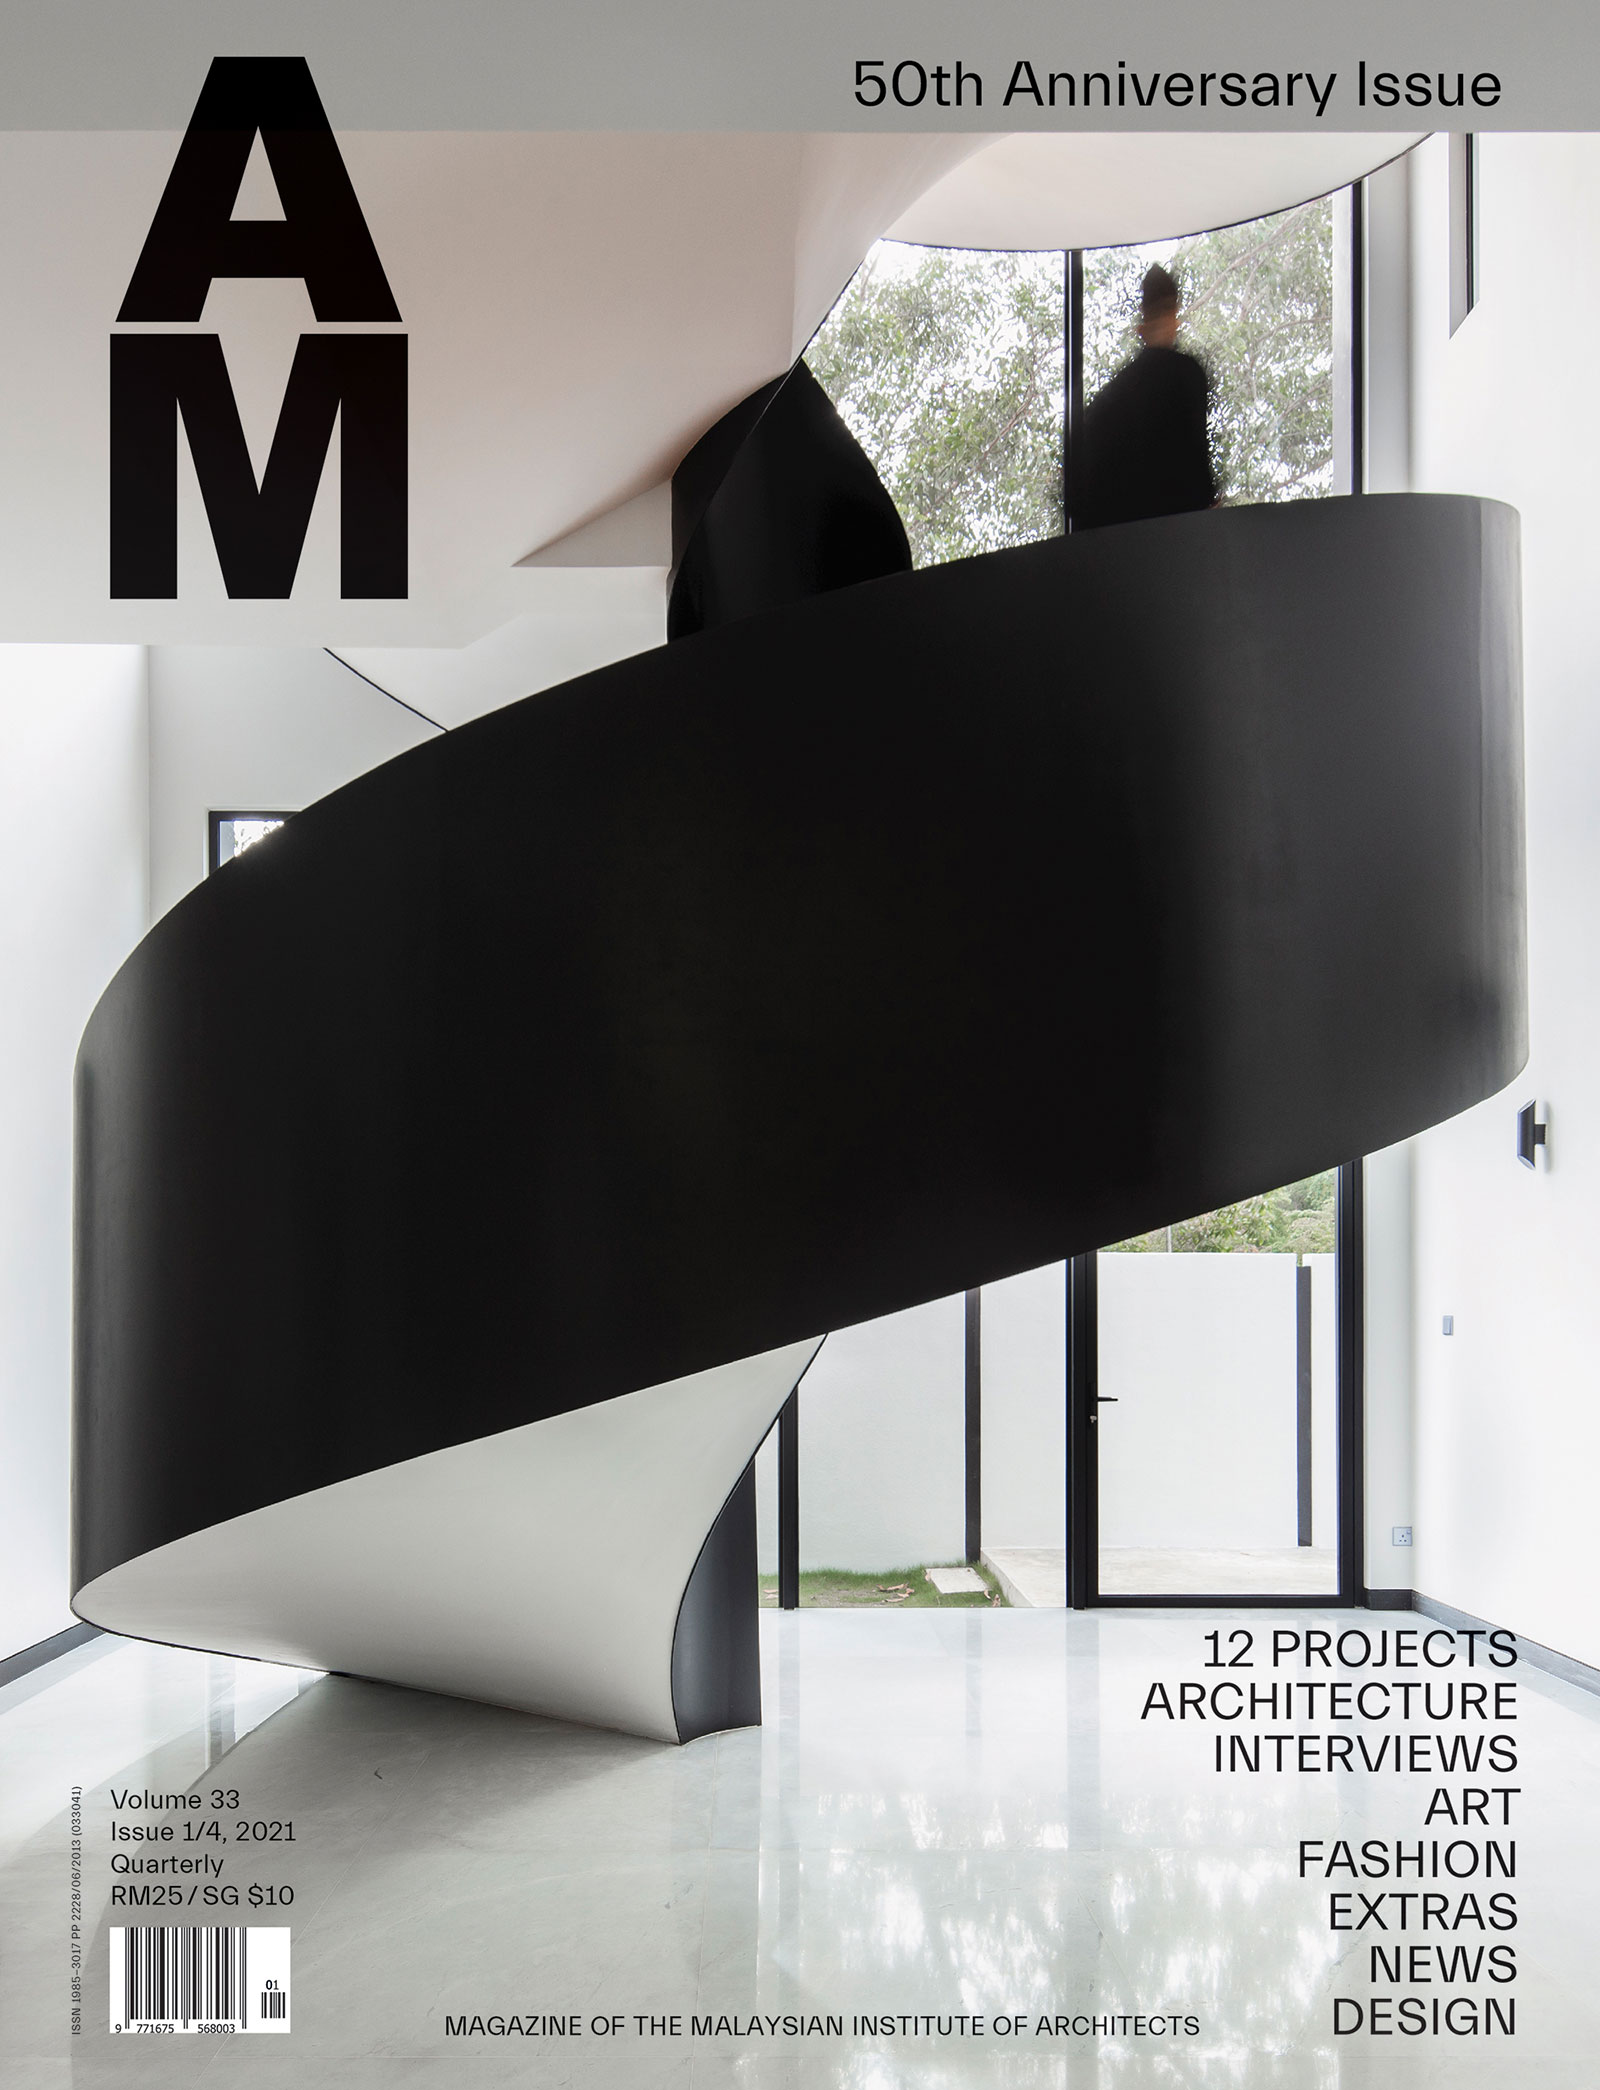 AM Issue 33 1/4 2021